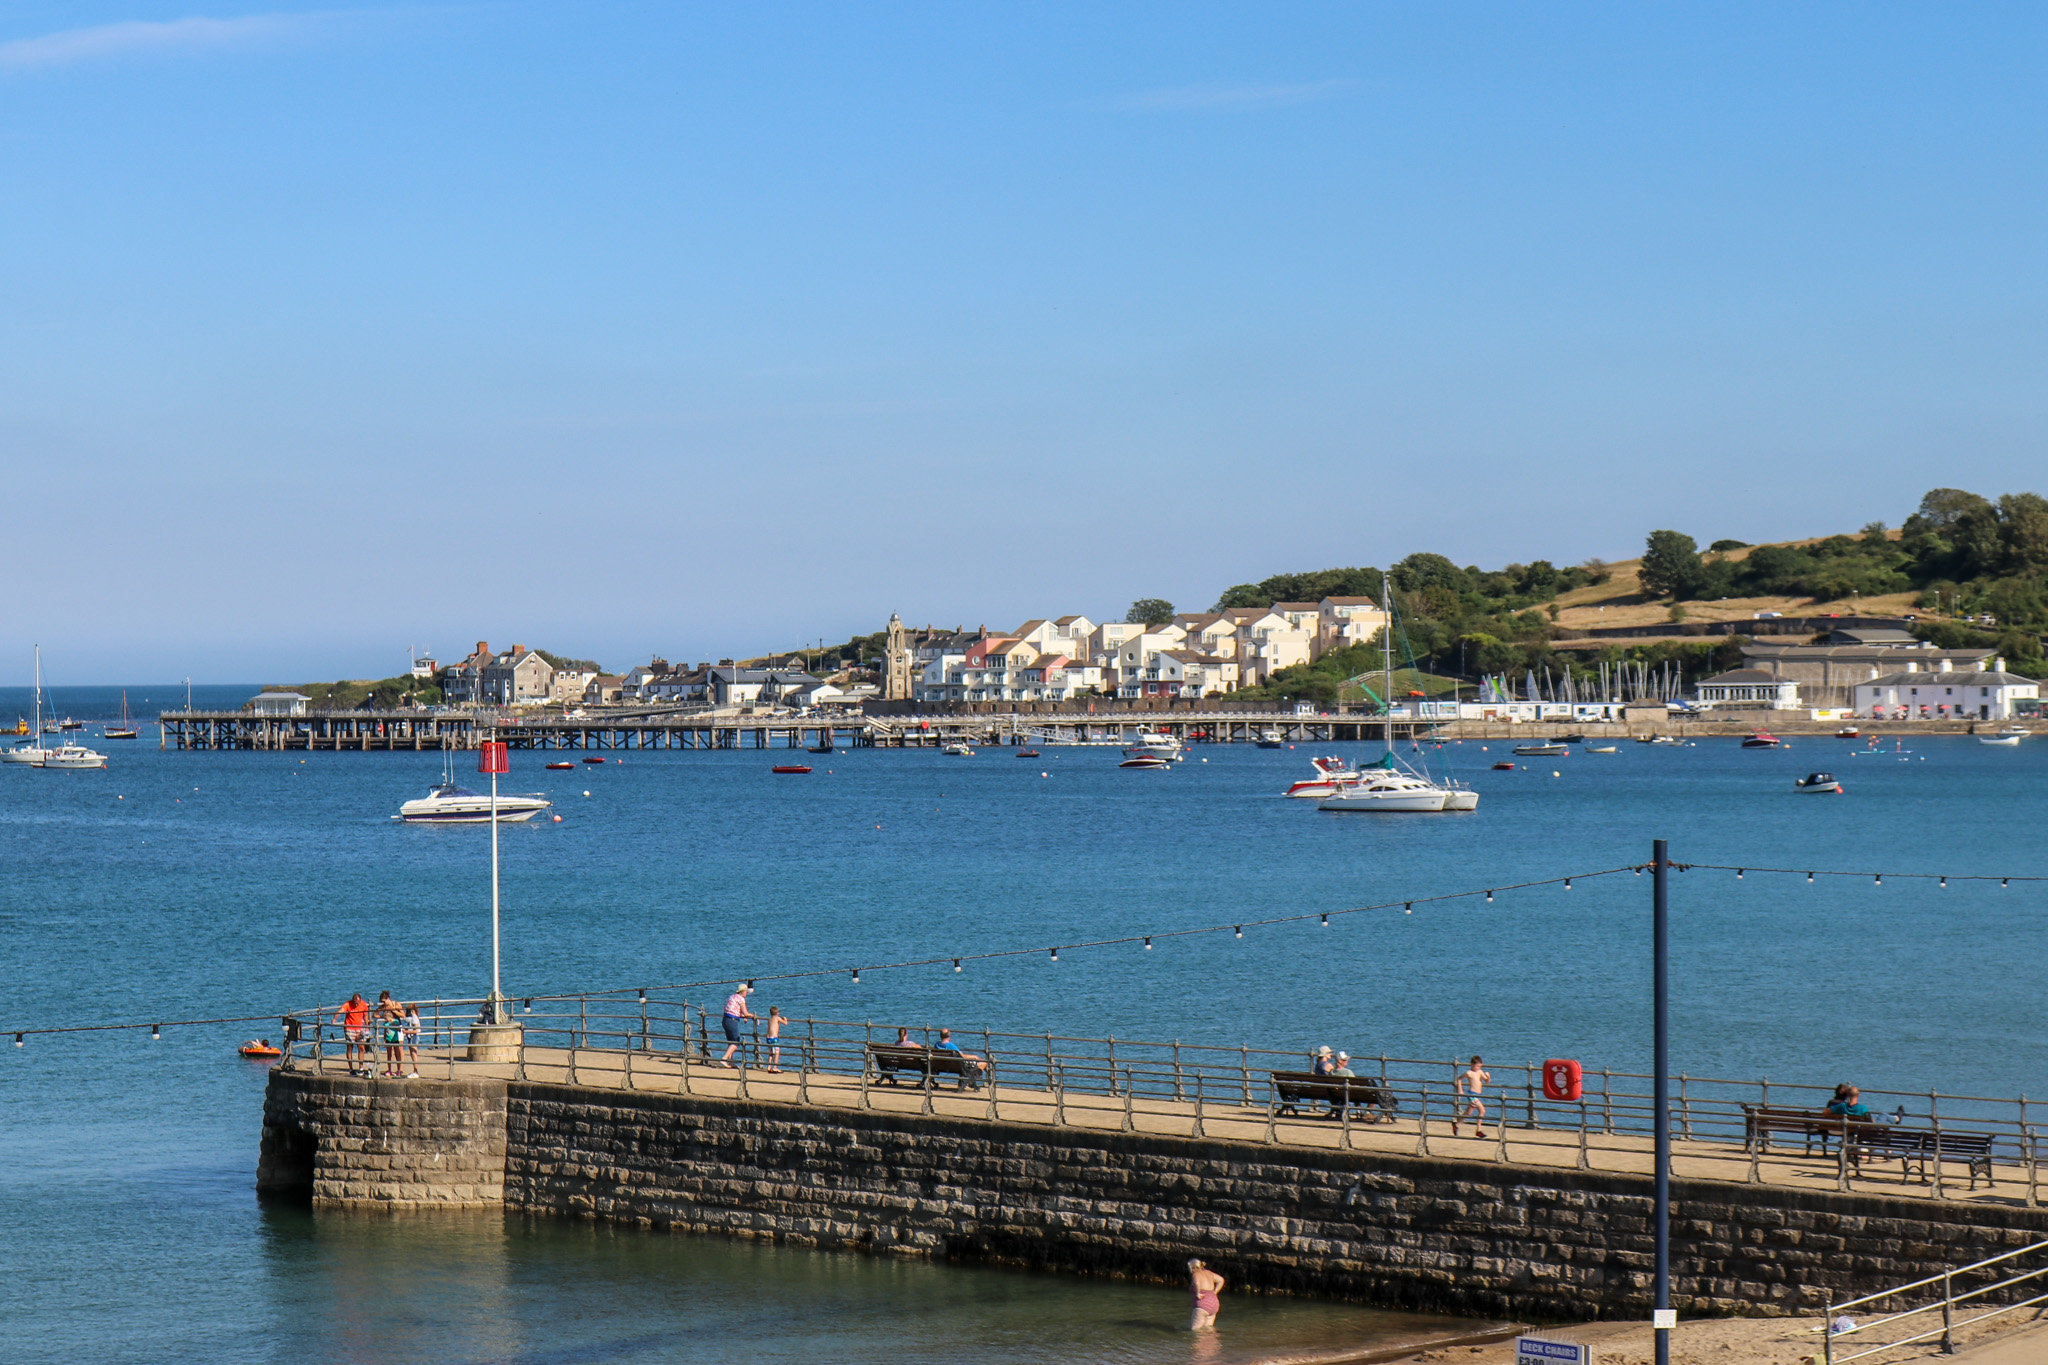 Boats in Swanage Bay